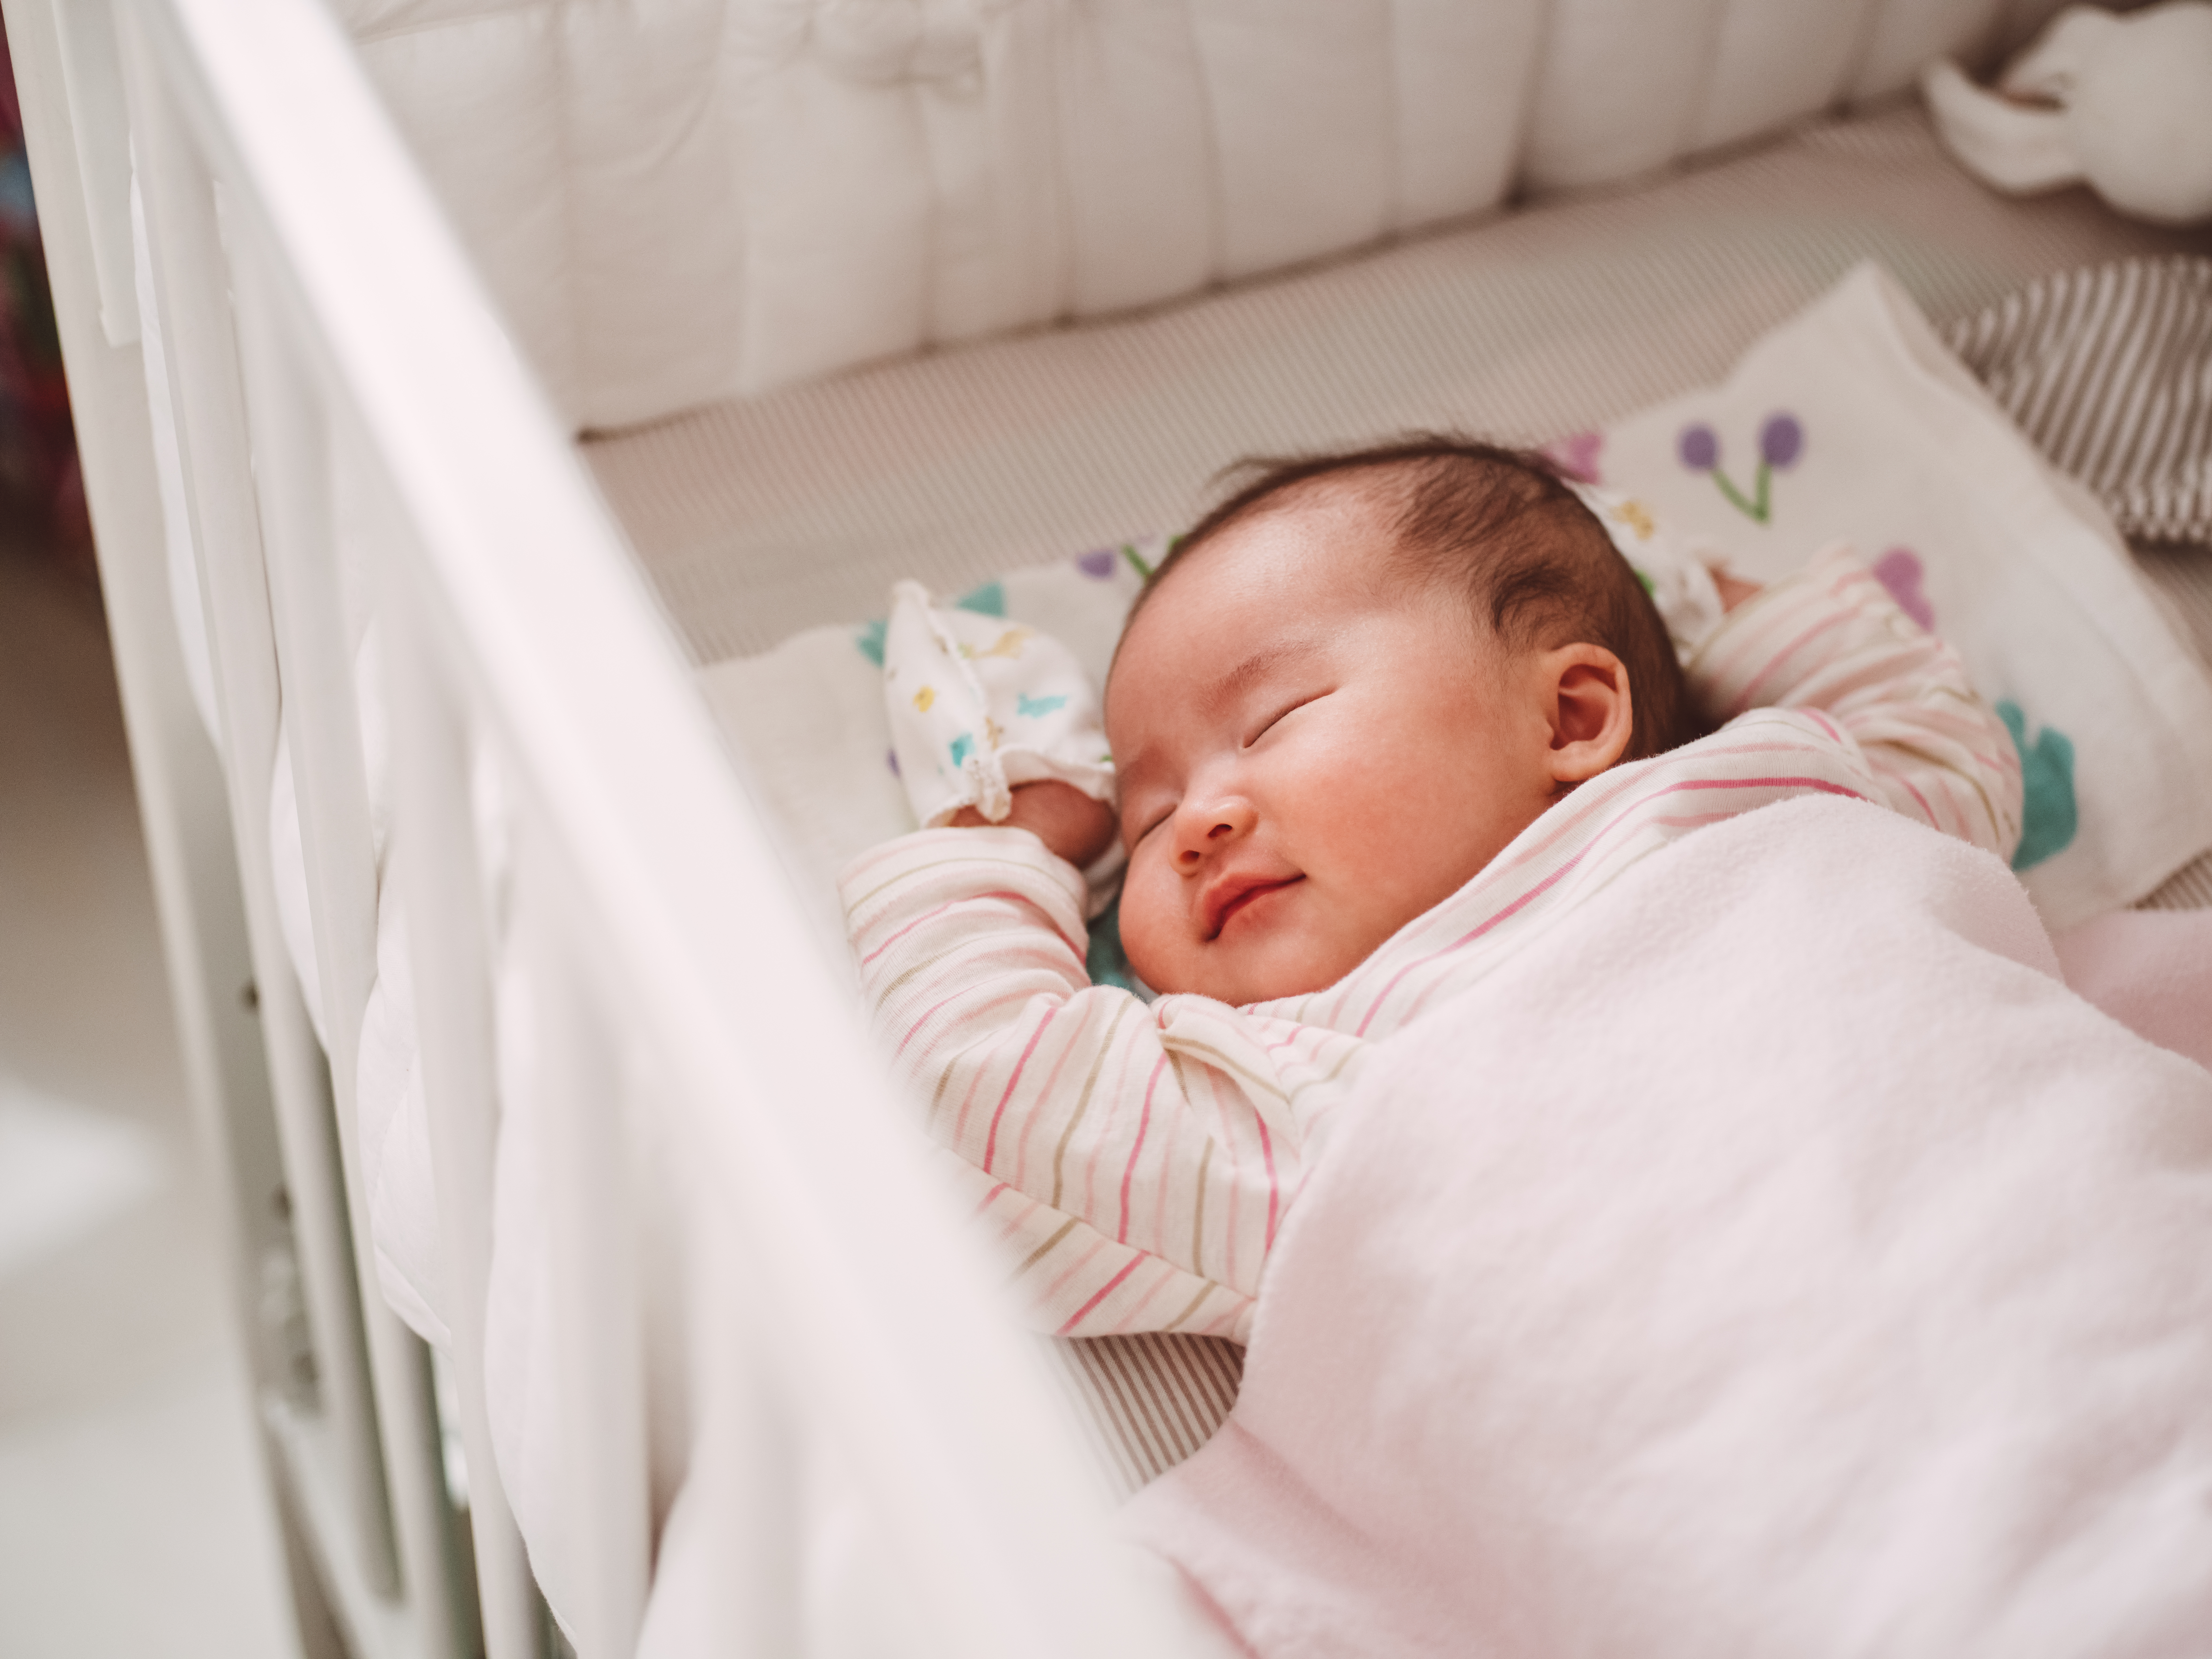 Adorable new born baby smiling sweetly while sleeping soundly in the crib